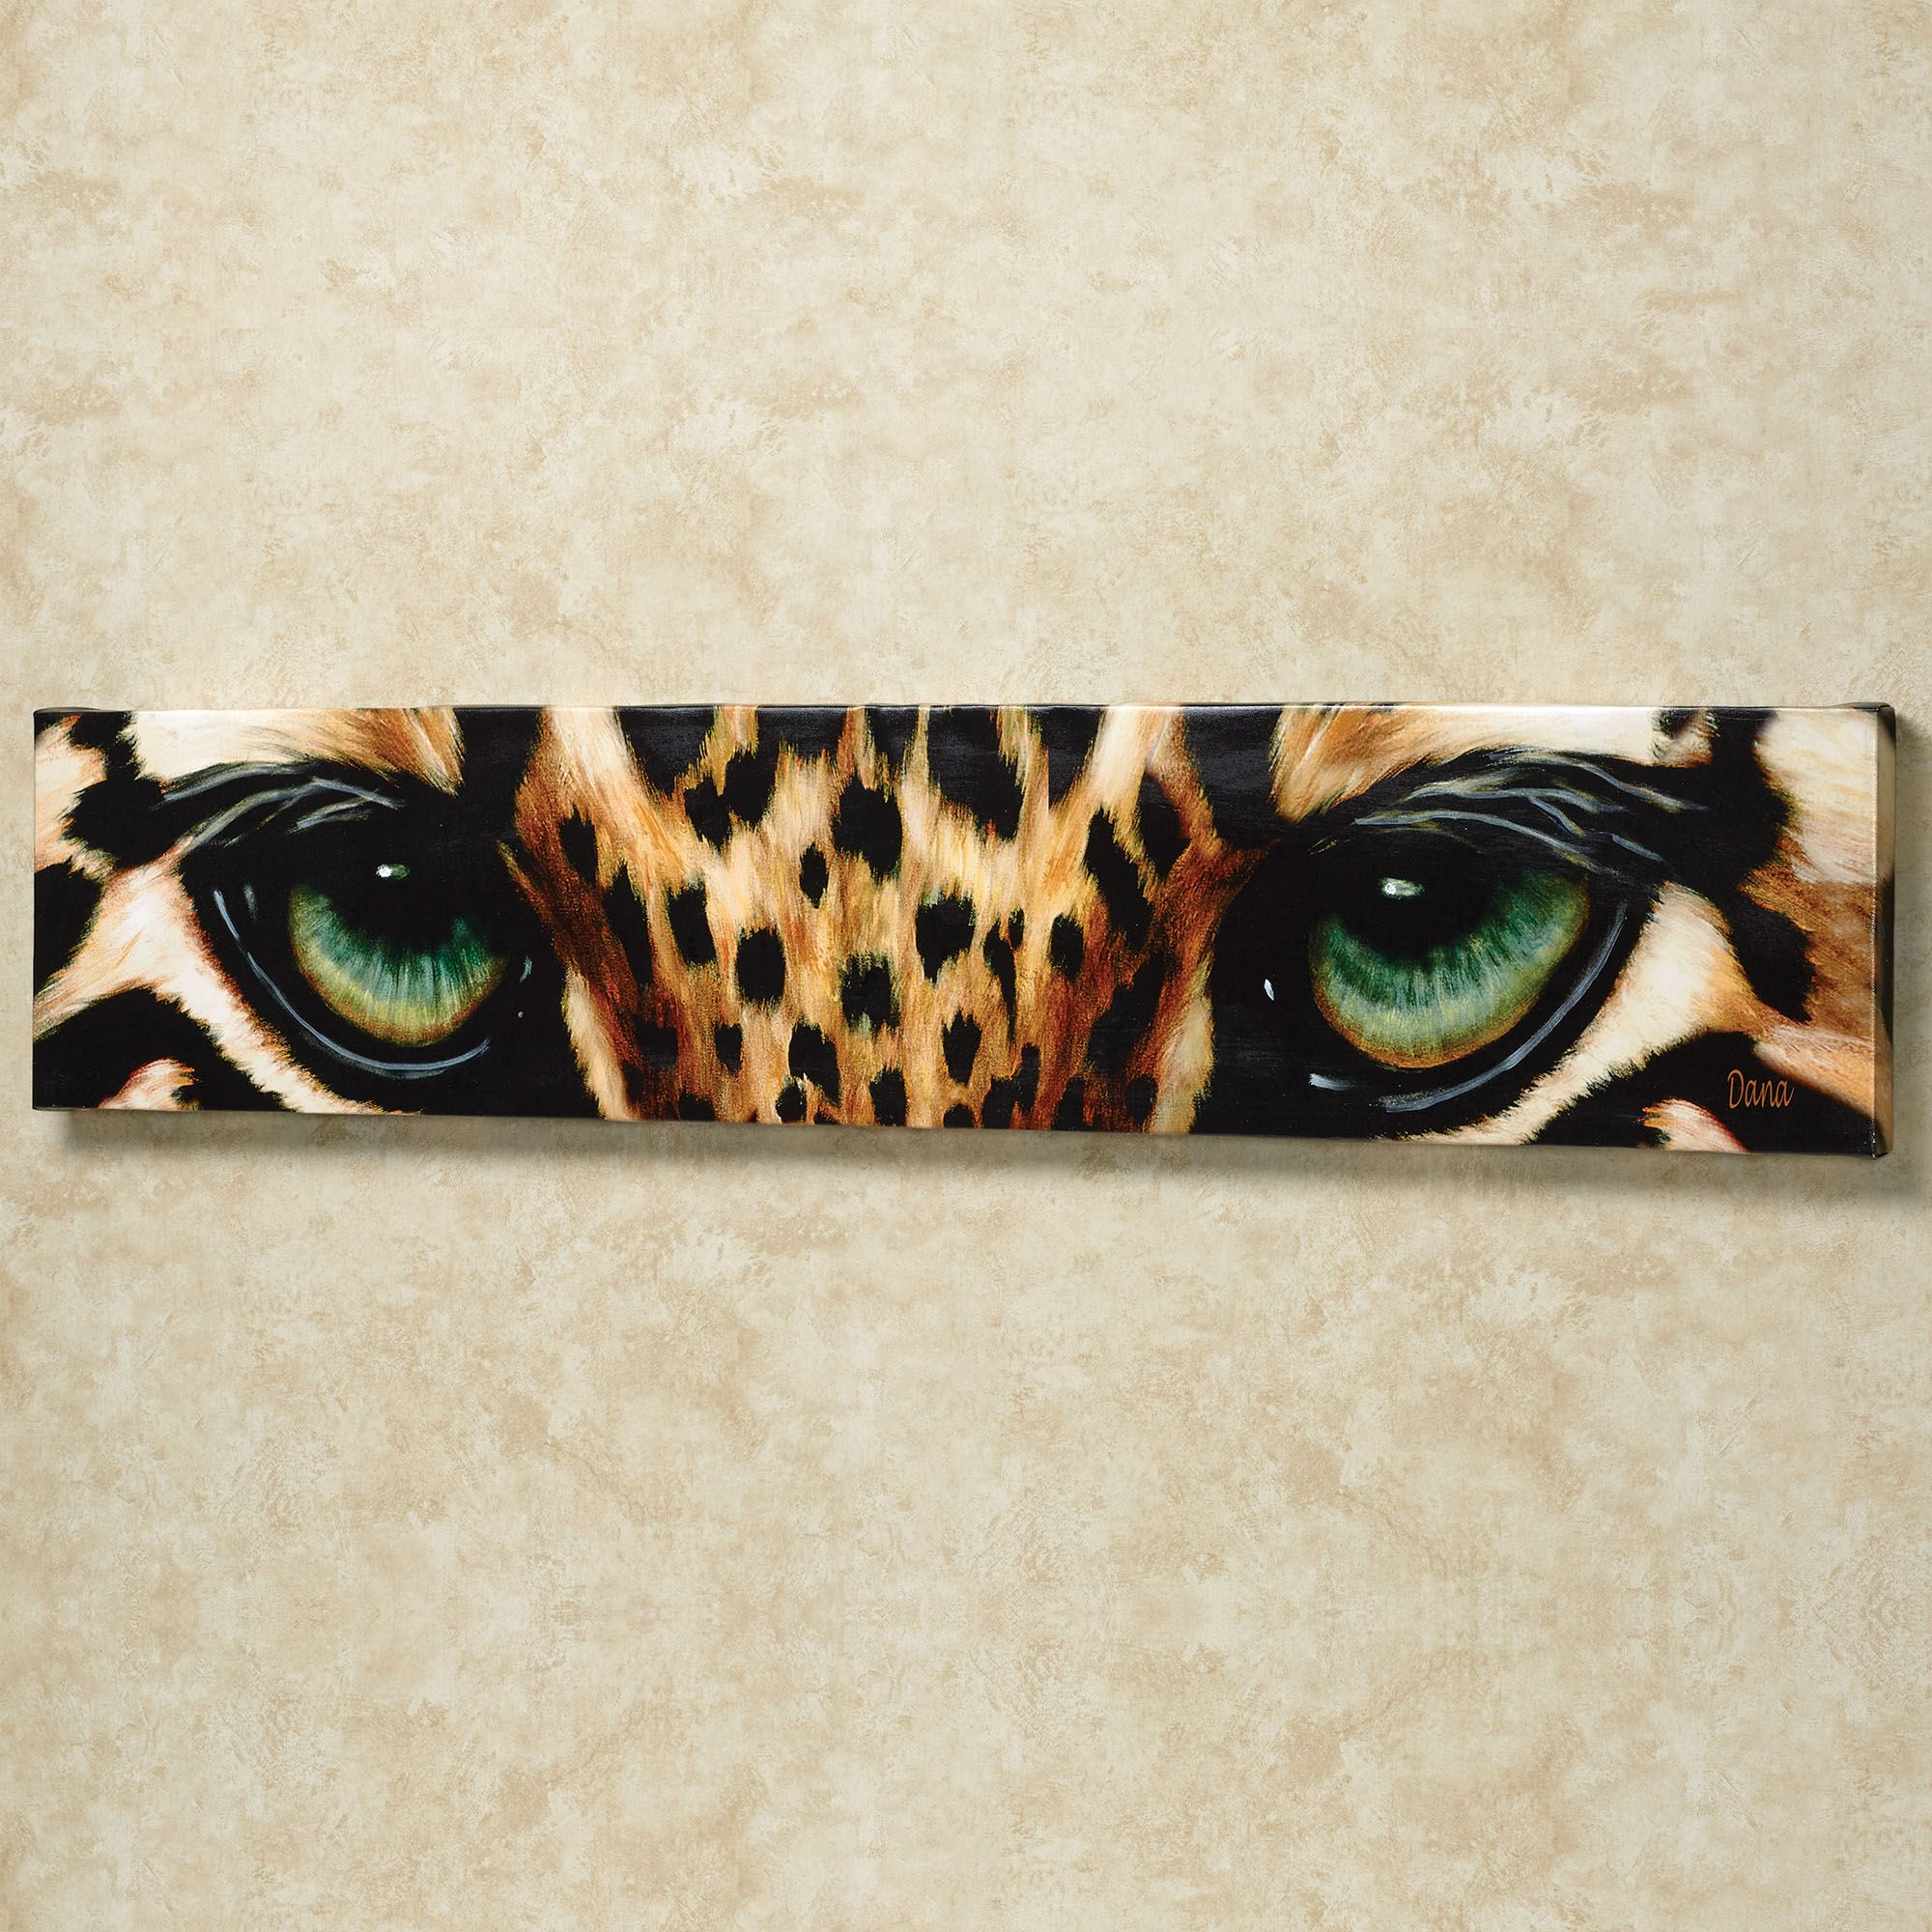 Leopard Wall Art Home Decor ~ Leopard eyes canvas art